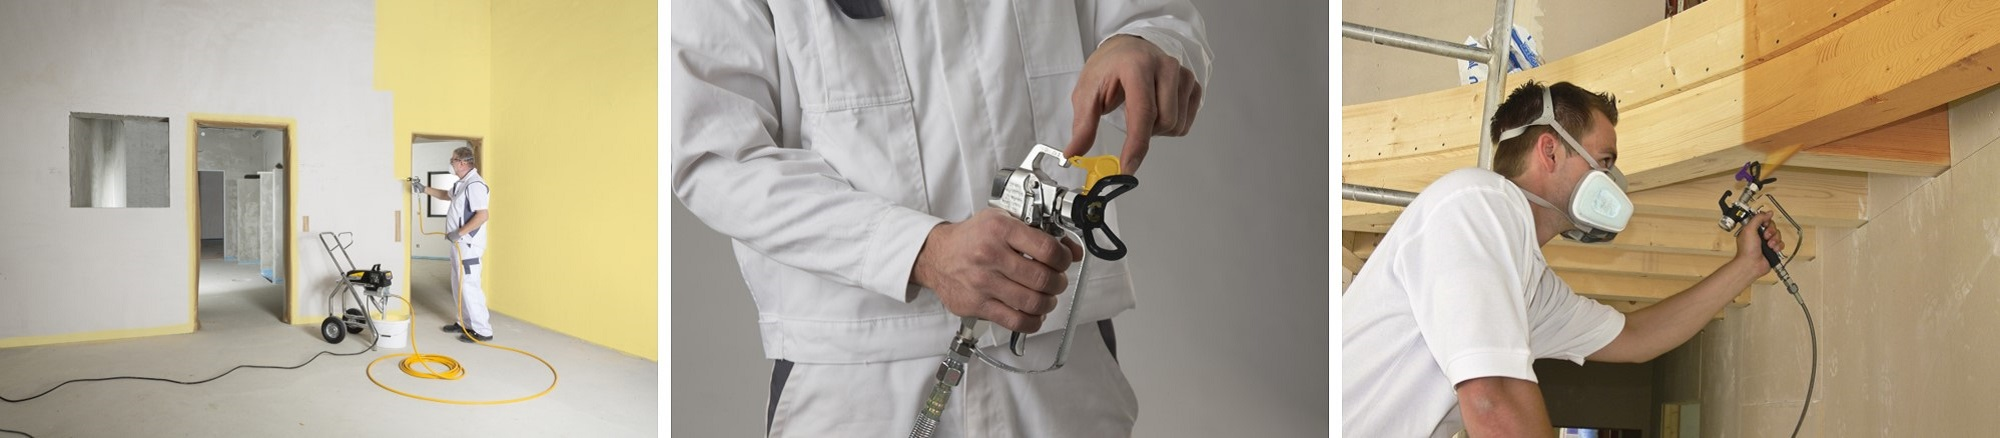 Yorkshire Spray Services Ltd - Contractor Applications